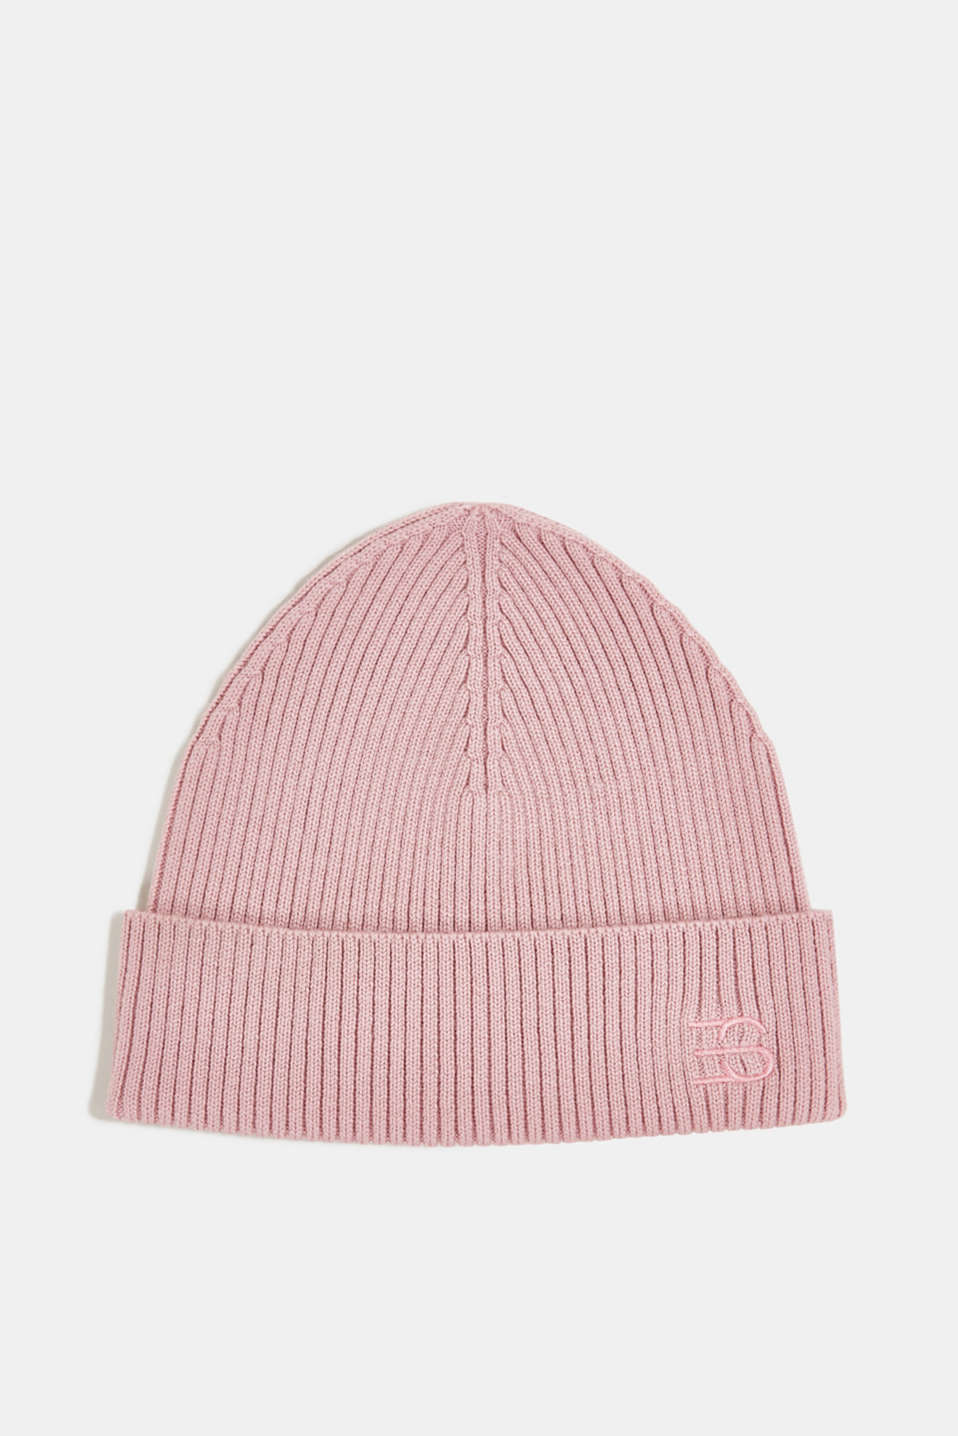 Esprit - Rib knit beanie made of blended wool